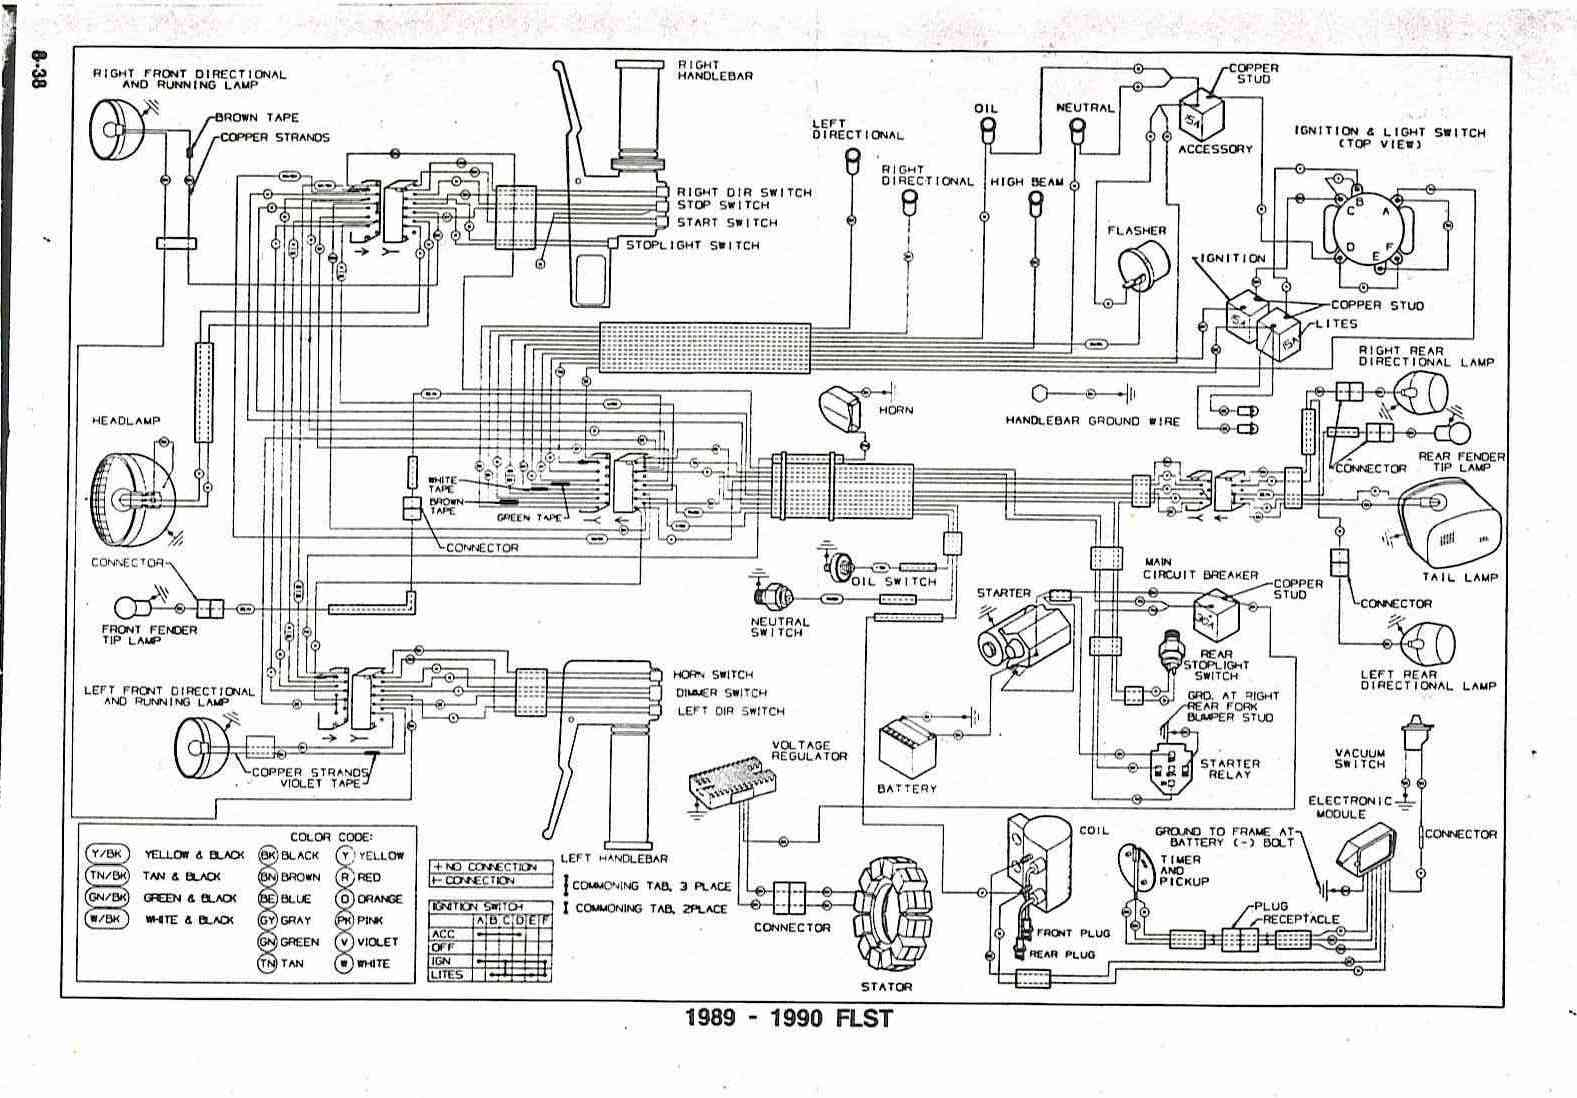 951HD_wireing_schematic2 harley wiring diagrams harley davidson golf cart schematics harley davidson wiring harness diagram at creativeand.co